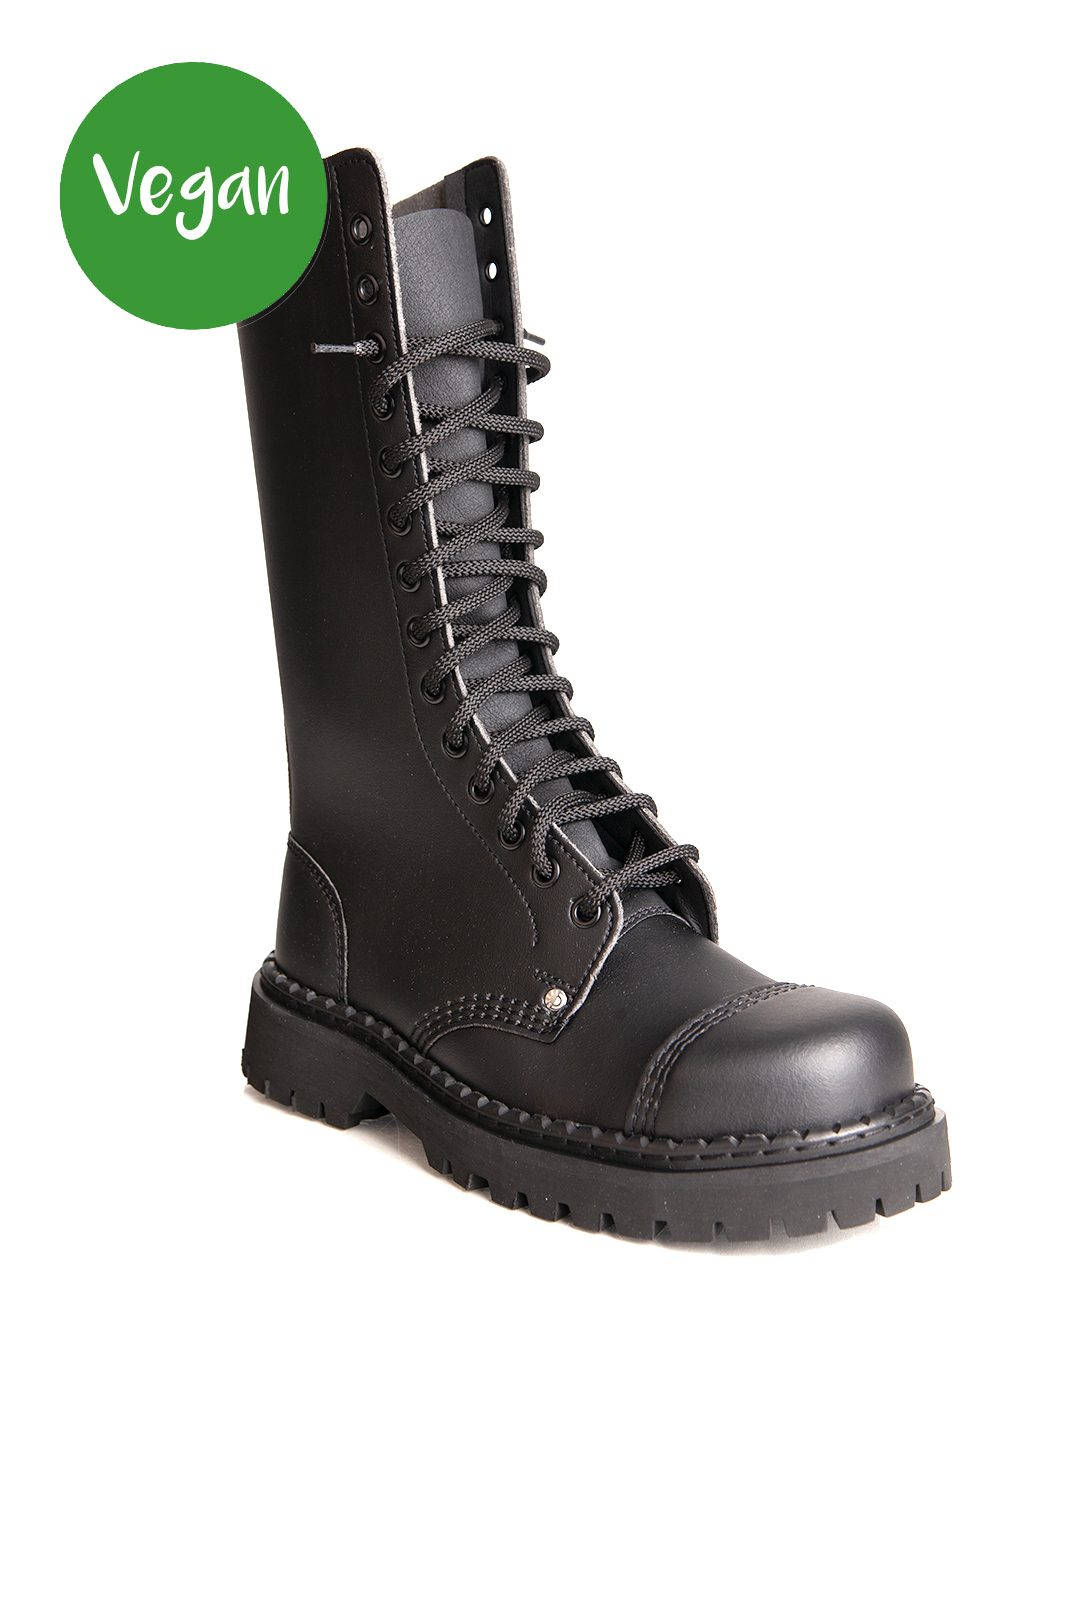 14 Eye Toe Vegan Boots Black